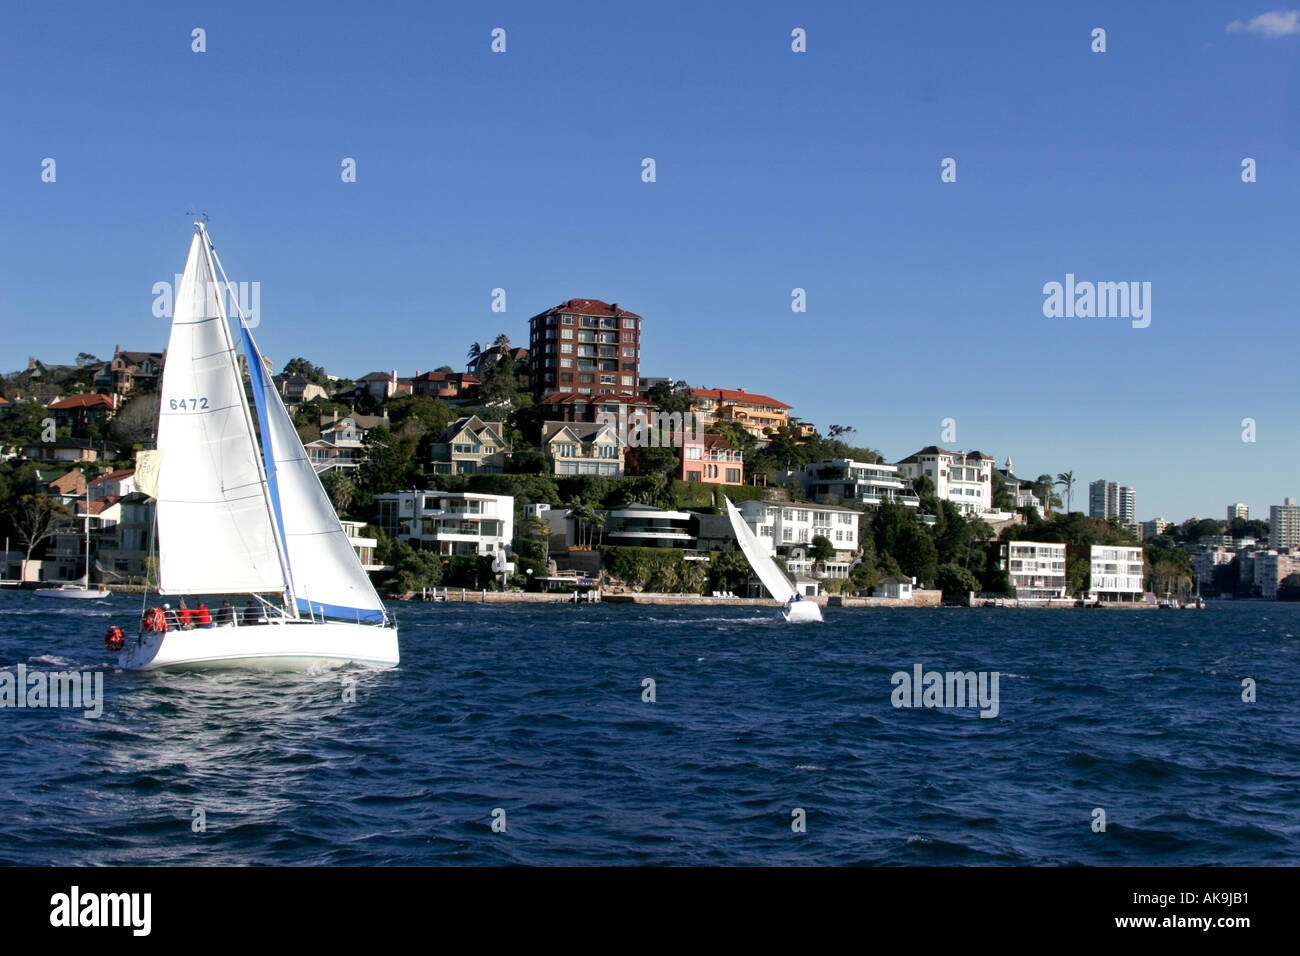 Yachting off Point Piper Sydney Harbor - Stock Image